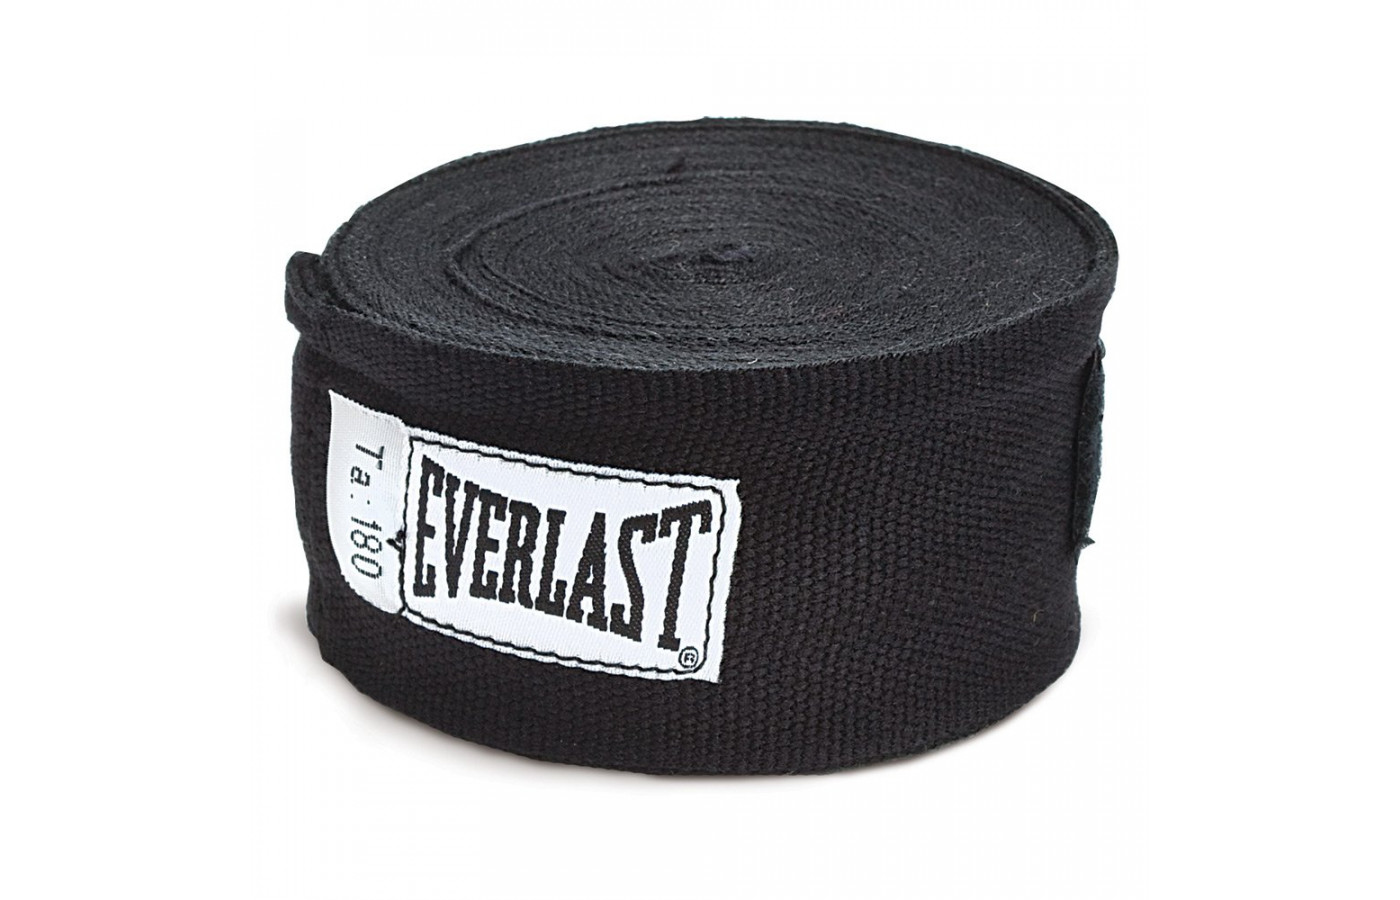 Everlast wraps black